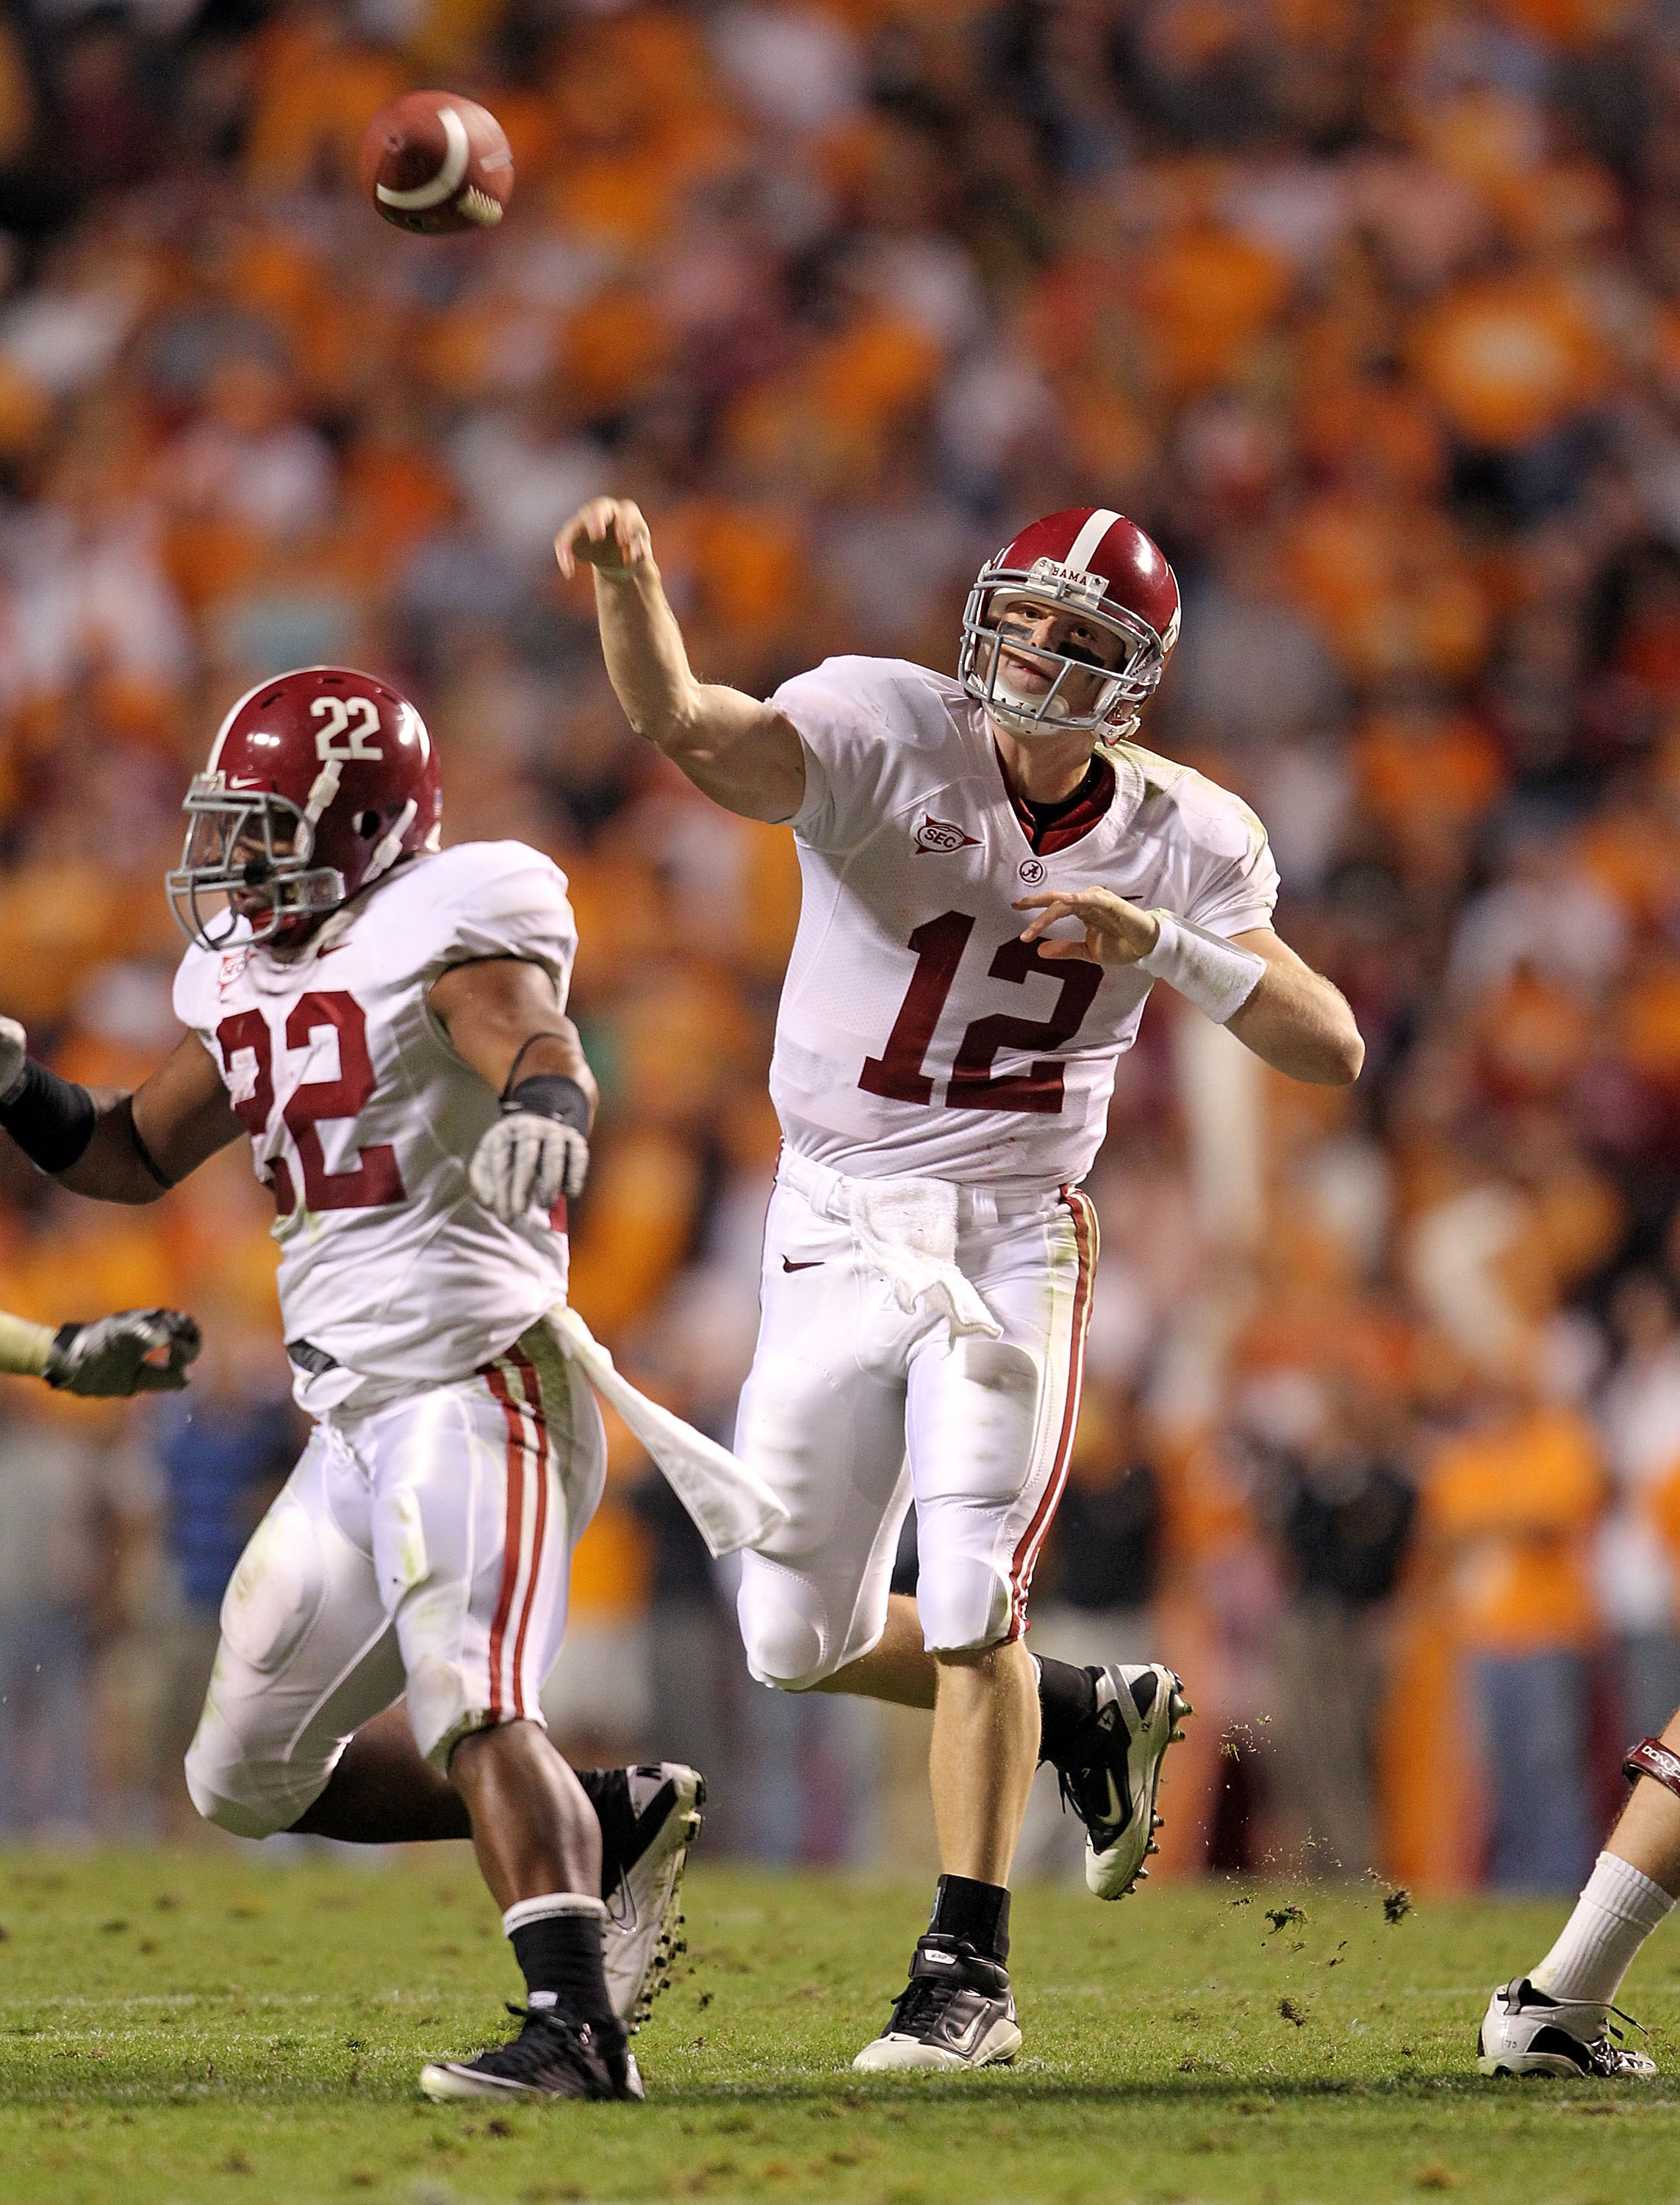 KNOXVILLE, TN - OCTOBER 23: Greg McElroy #12 of the Alabama Crimson Tide throws a pass during the SEC game against the Tennessee Volunteers at Neyland Stadium on October 23, 2010 in Knoxville, Tennessee.  (Photo by Andy Lyons/Getty Images)